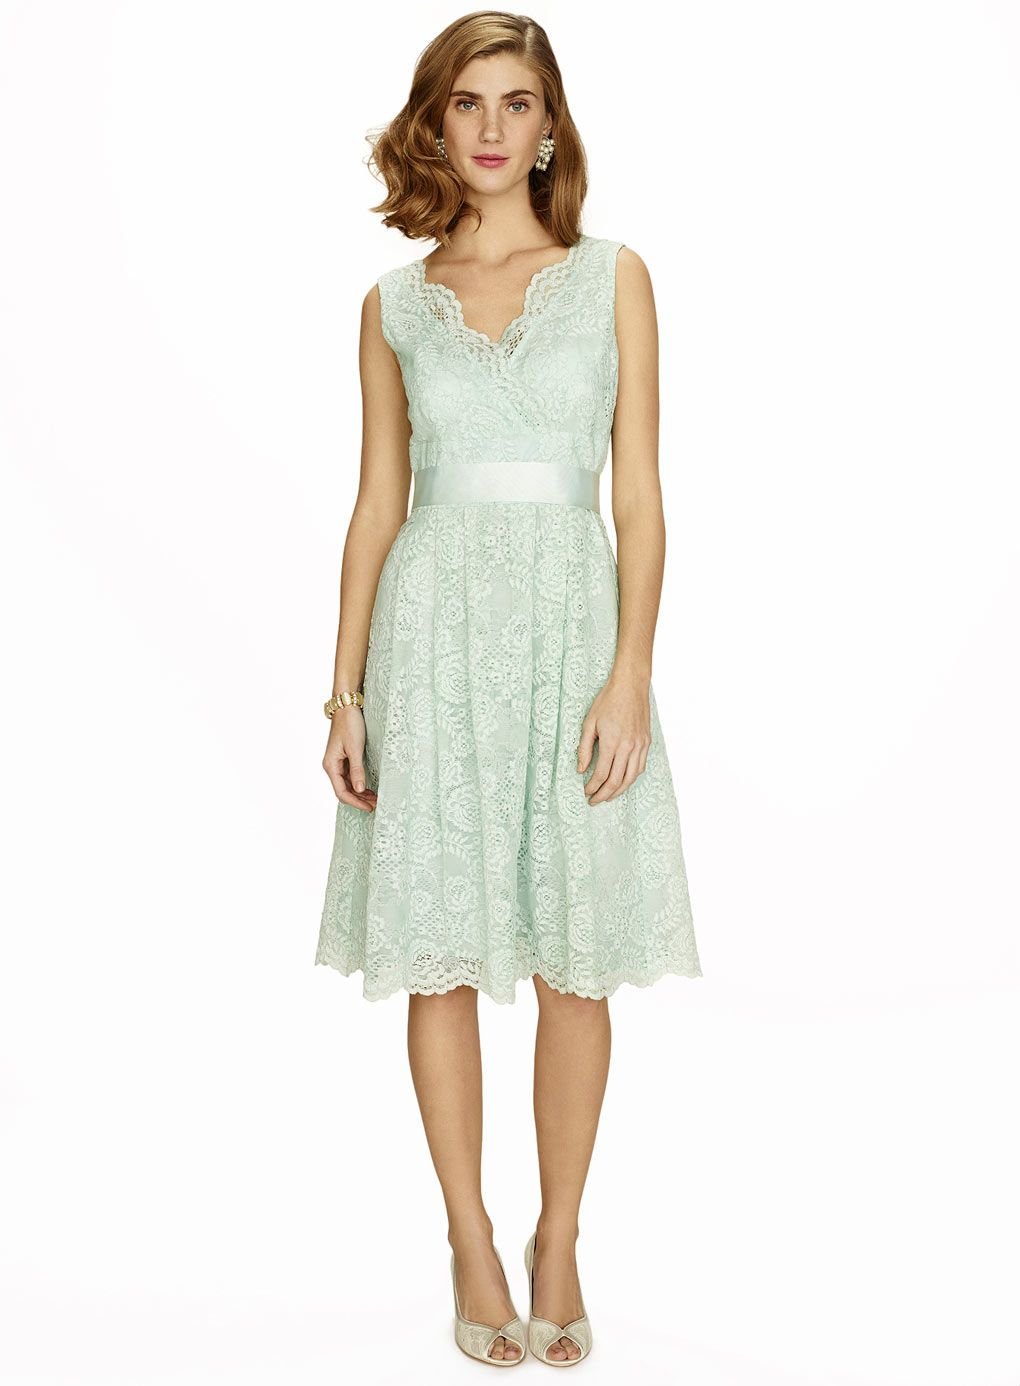 Mint green lace short bridesmaid dress bhs 9500 sizes 6 22 mint green lace short bridesmaid dress bhs 9500 sizes 6 ombrellifo Images